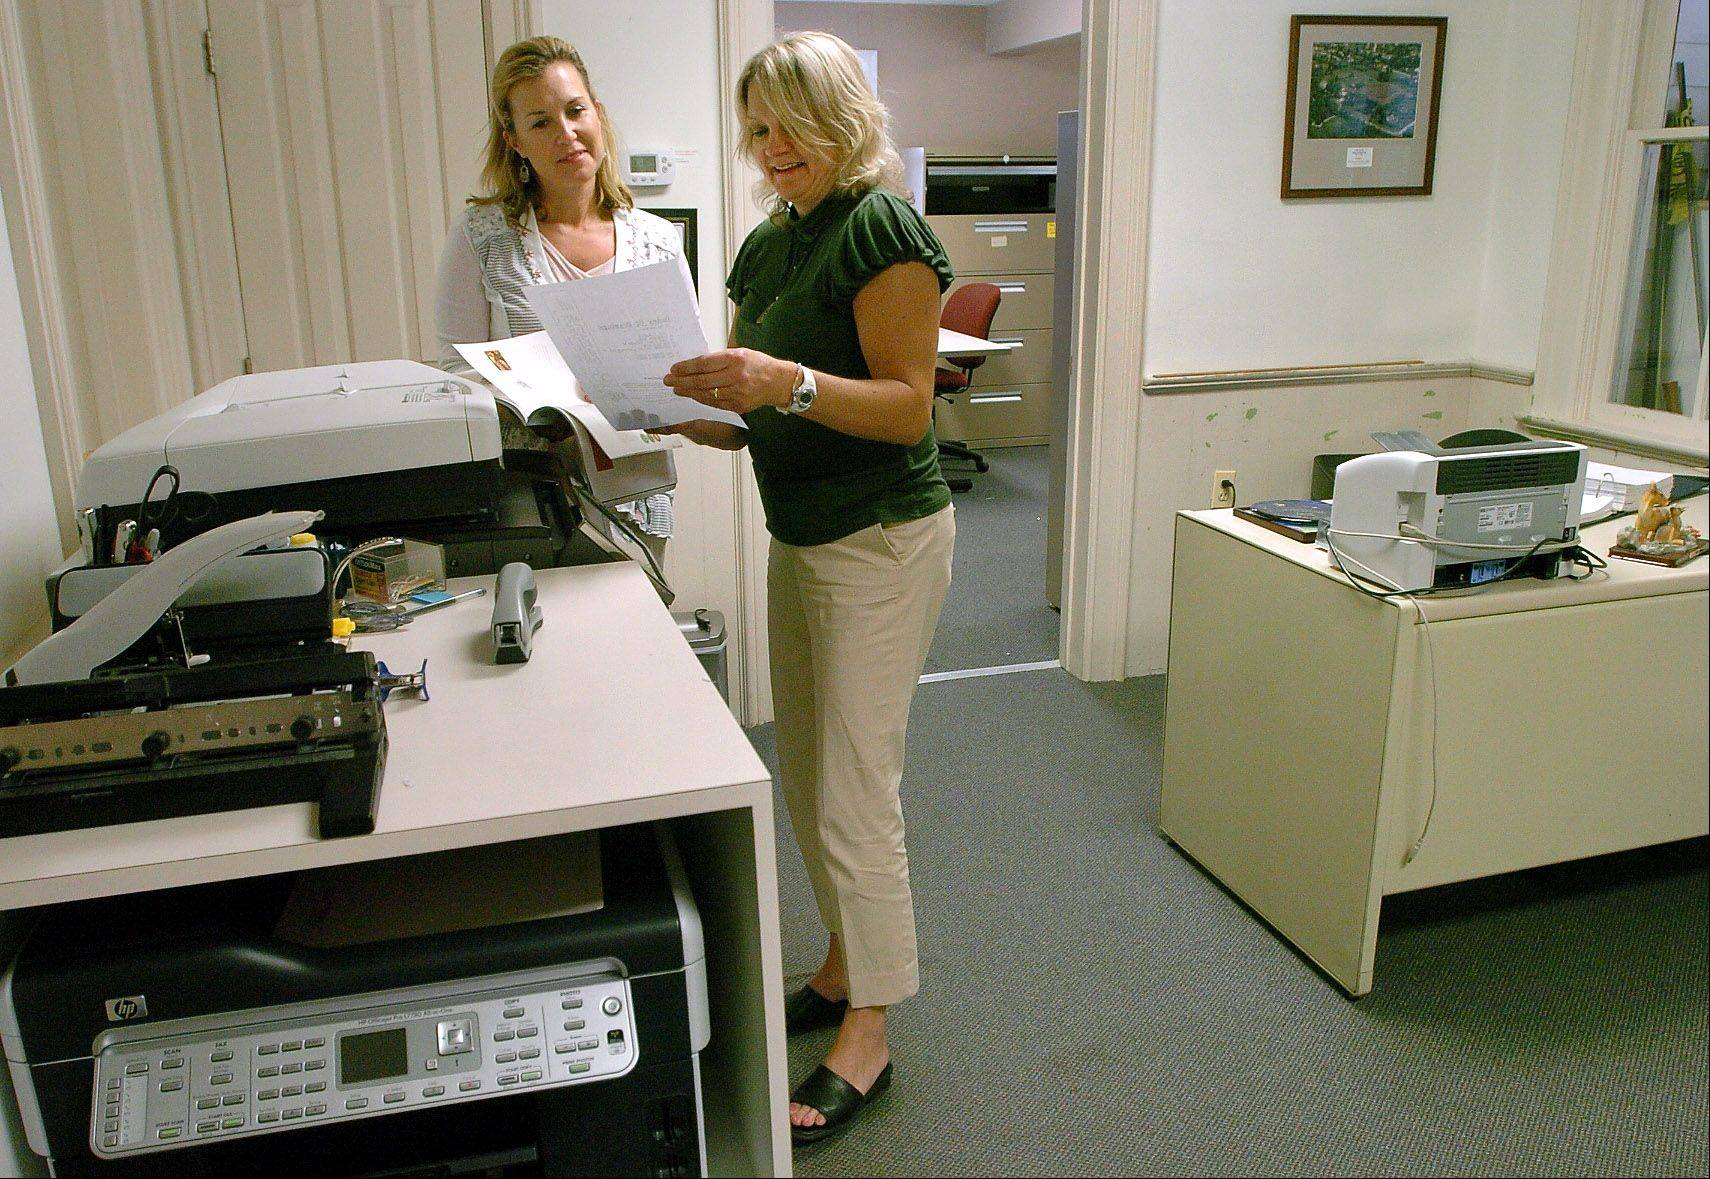 Beth McAndrews of Barrington and Janet VanZant of Deer Park, work at the Village of Deer Park. They found their jobs with the help of CareerPlace in Barrington.